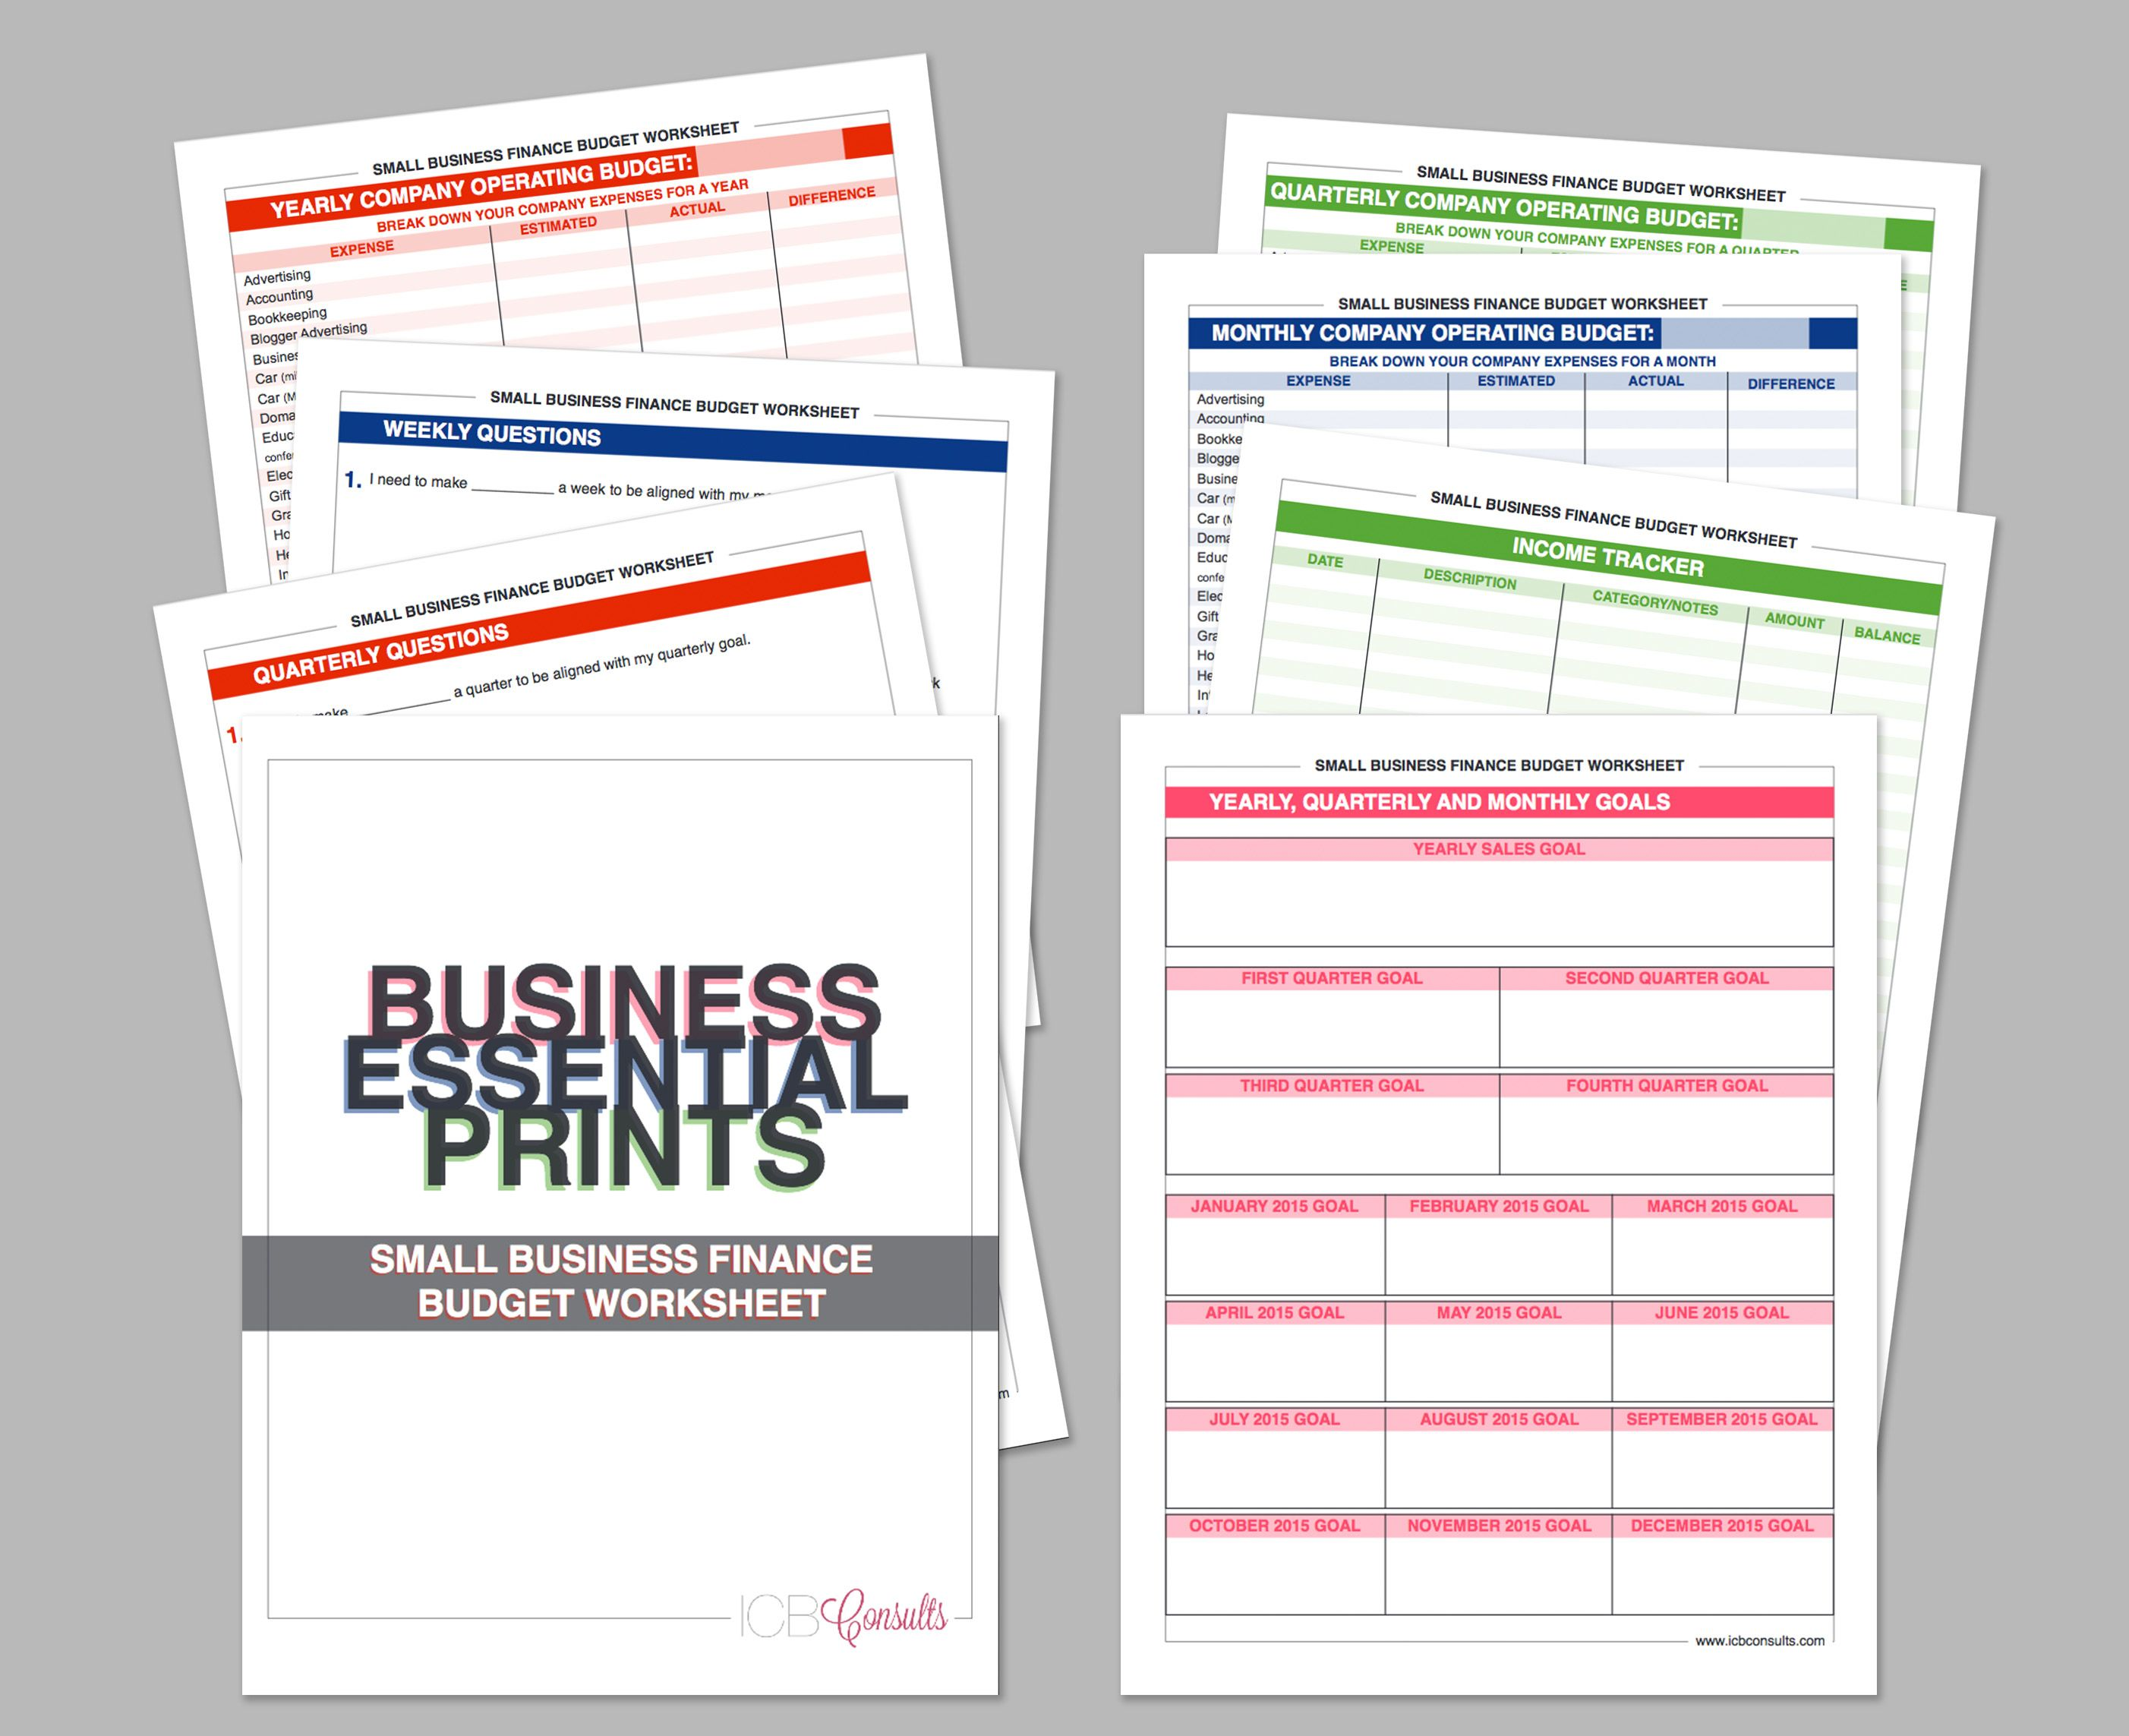 Small Business Finance Budget Worksheet Questionnaire Goals Income Tracker Expense Tracker